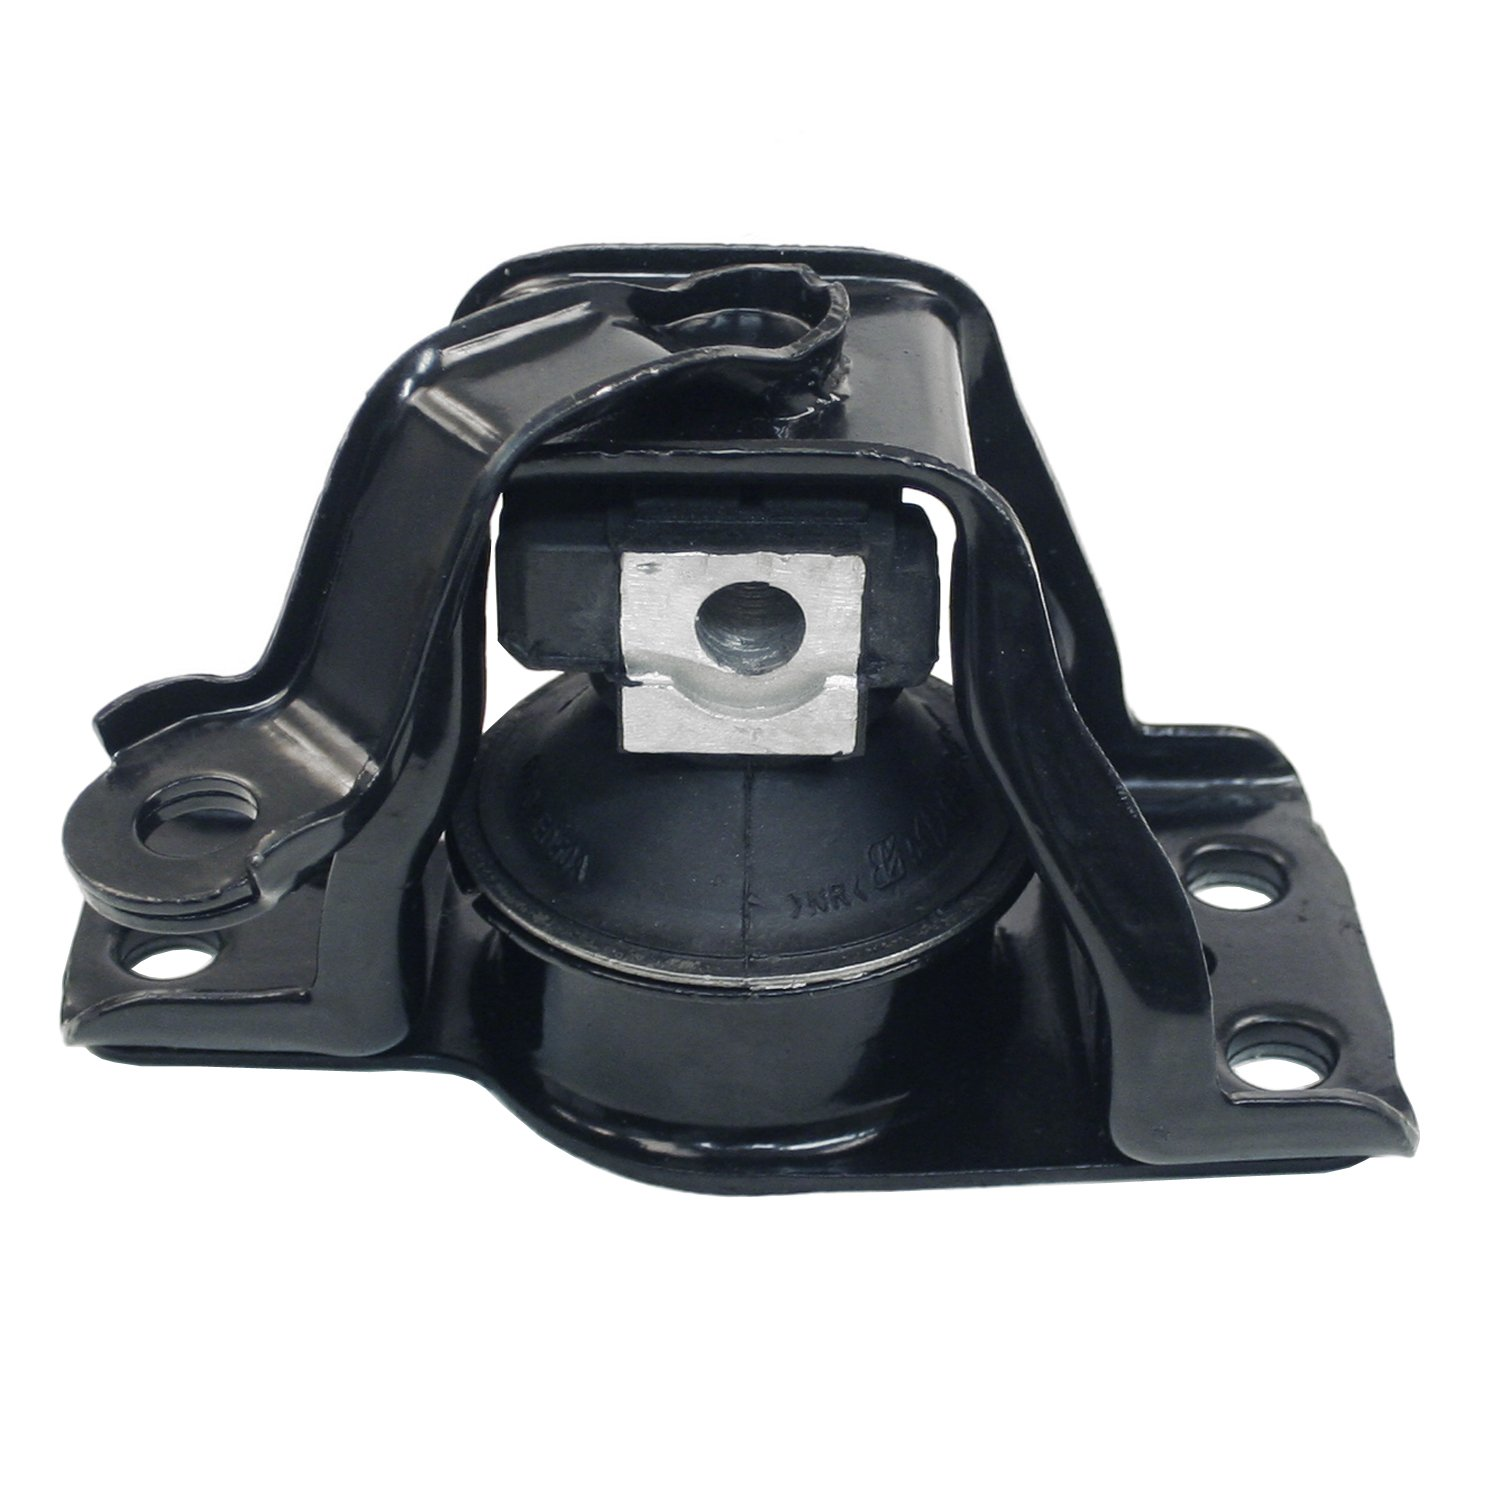 COMP Cams 70-119-6 High Energy 210//210 Hydraulic Flat Cam for Ford 2000-2300 4 Cylinder